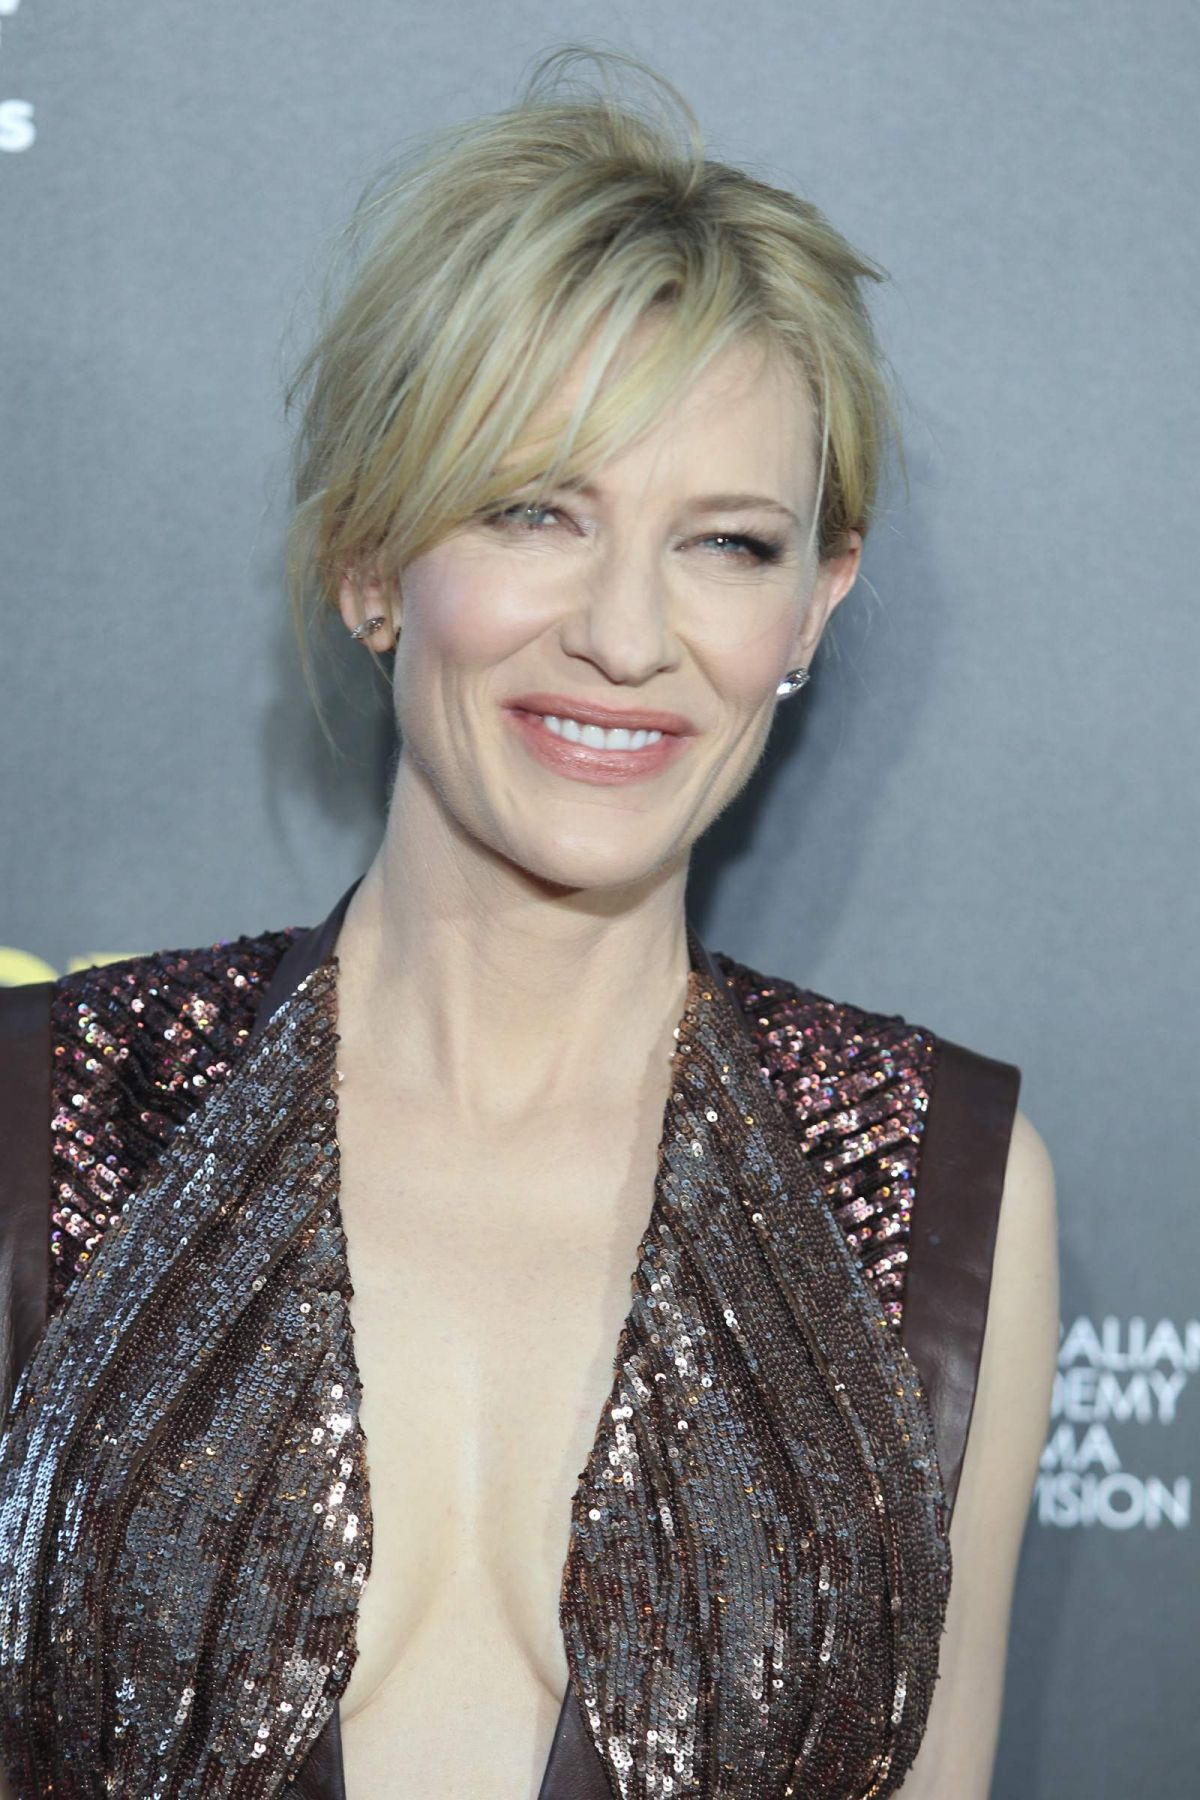 CATE BLANCHETT at at 3rd Annual AACTA Awards in Sydney ... Cate Blanchett